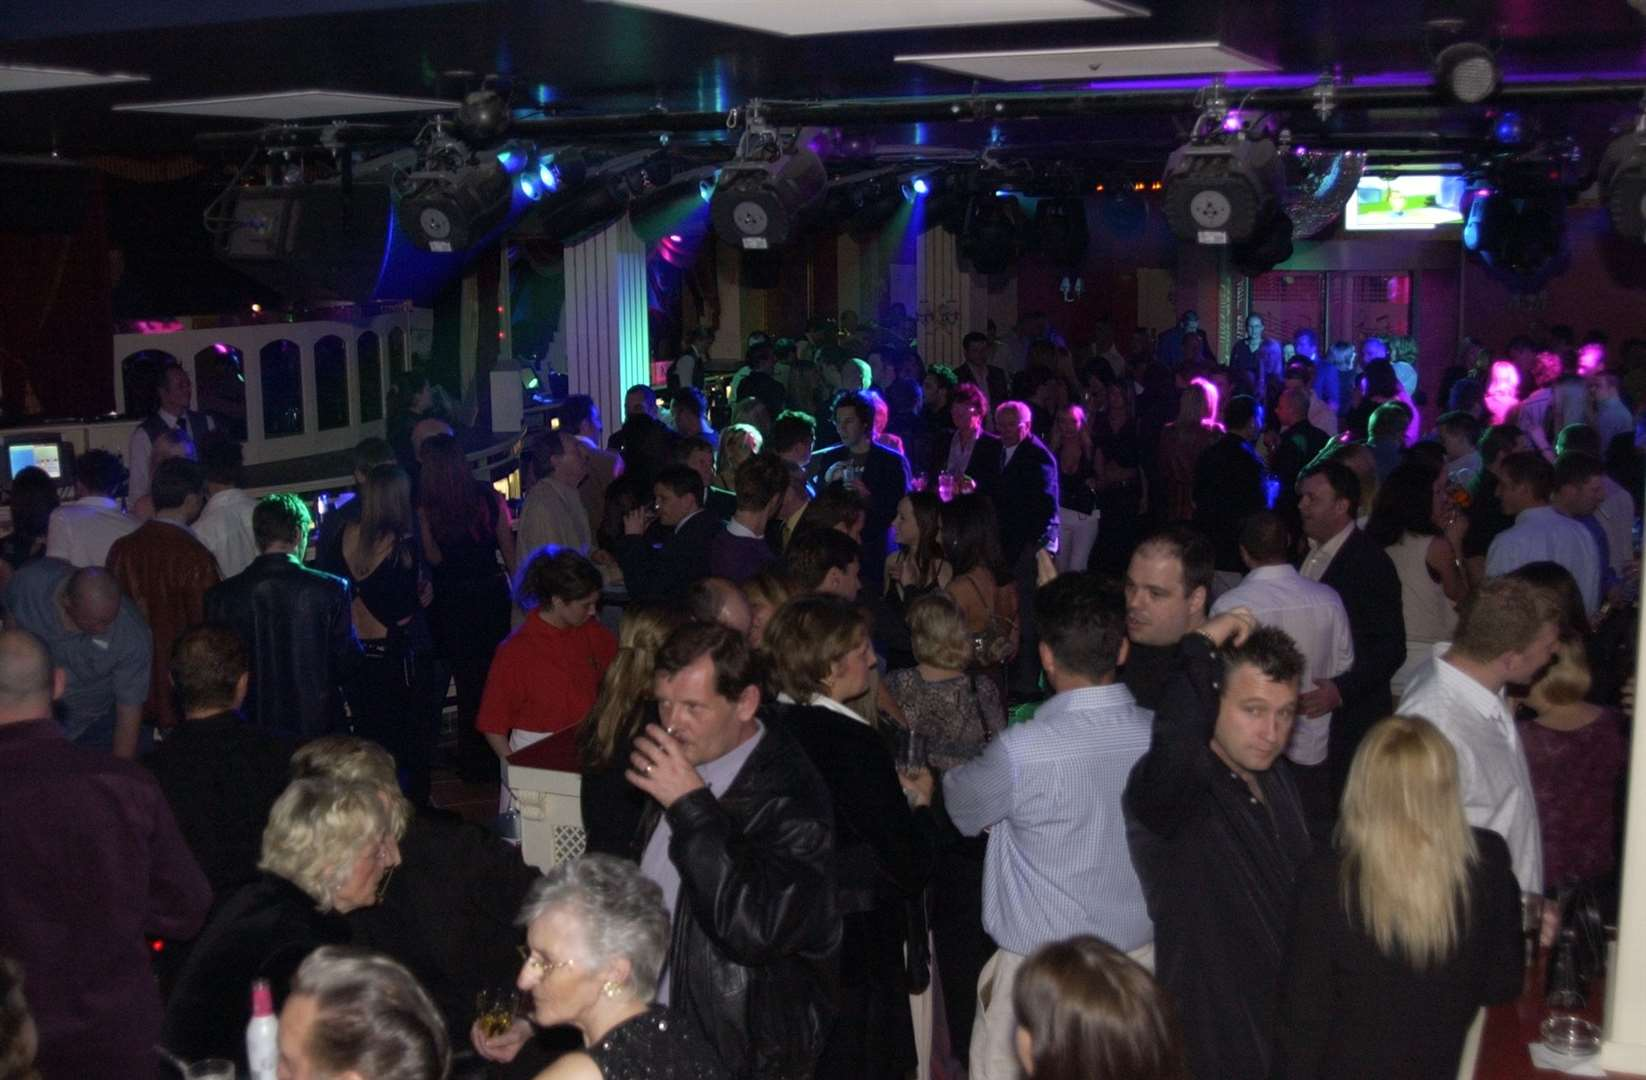 On the dance floor in Strawberry Moons Maidstone.